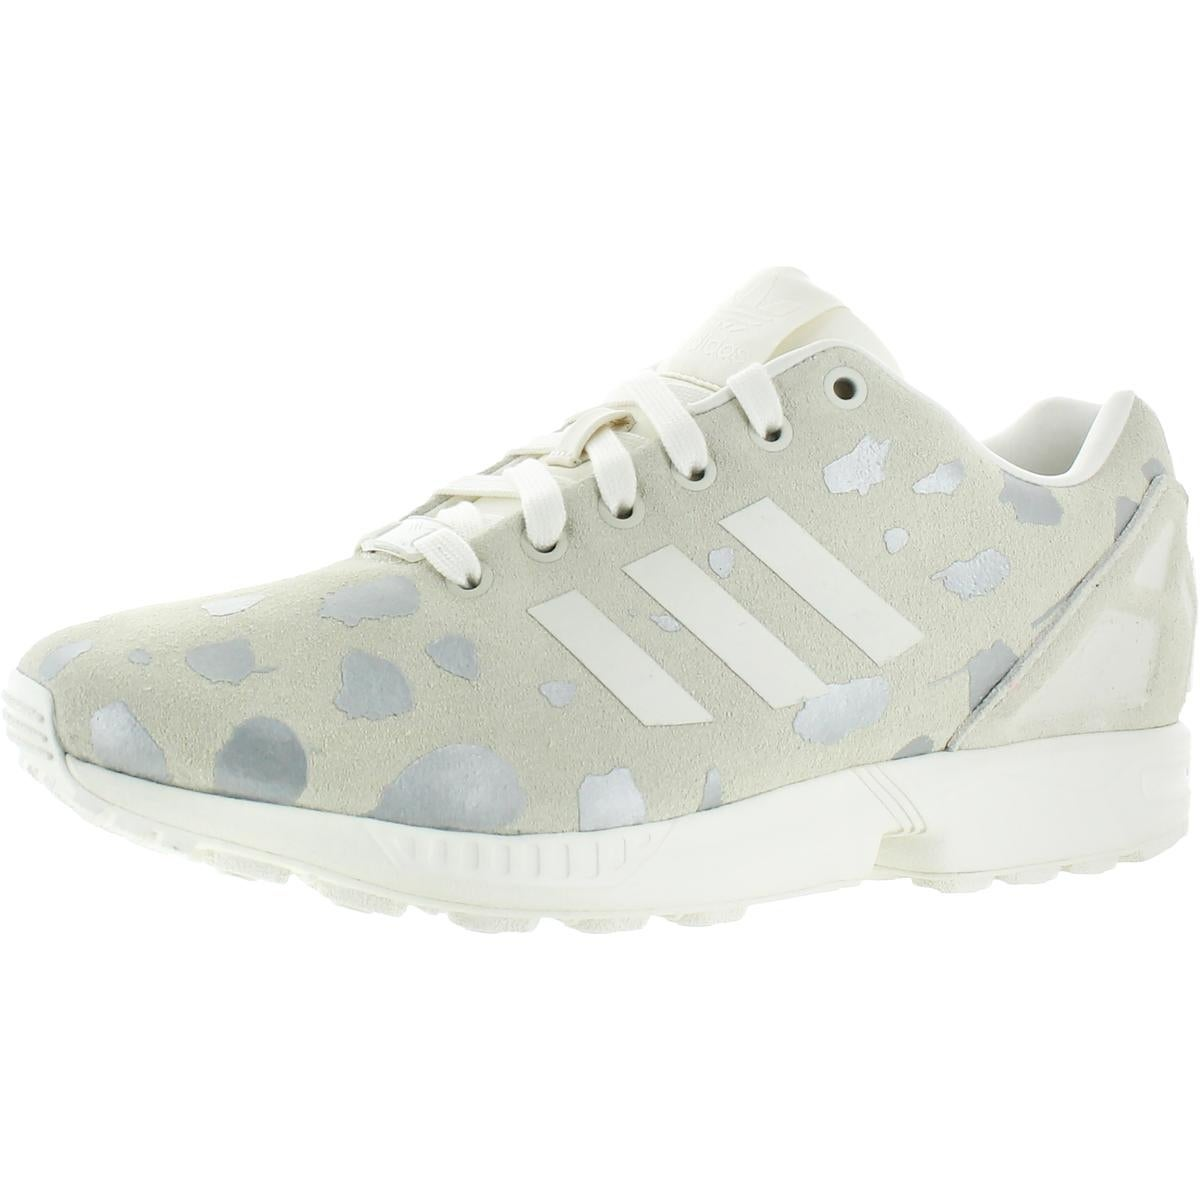 separation shoes f9950 1b09a Shop adidas Originals Womens ZX FLux Casual Shoes Suede Animal Print - 9  medium (b,m) - Free Shipping On Orders Over  45 - Overstock - 21942270